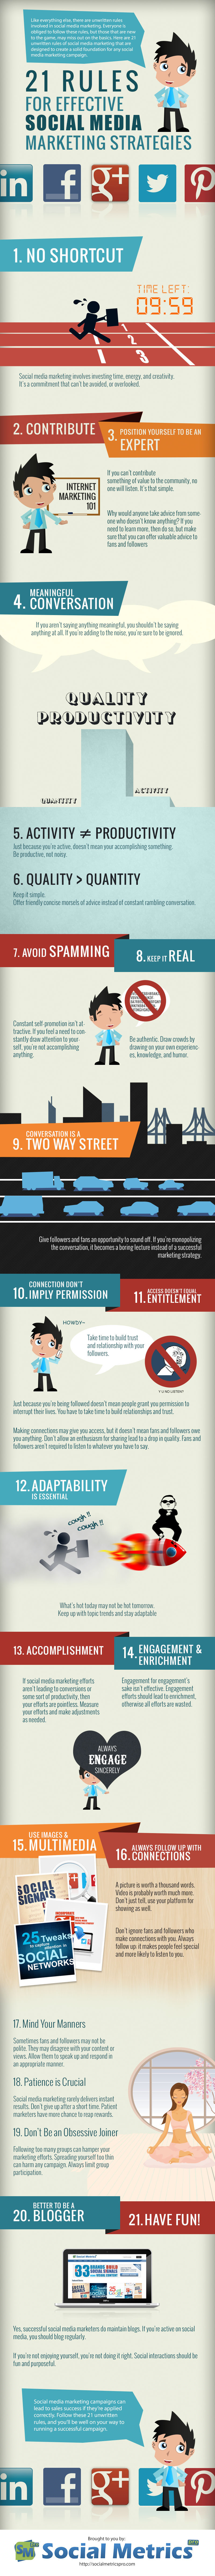 21 Rules For Effective Social Media Marketing Strategies [Infographic]